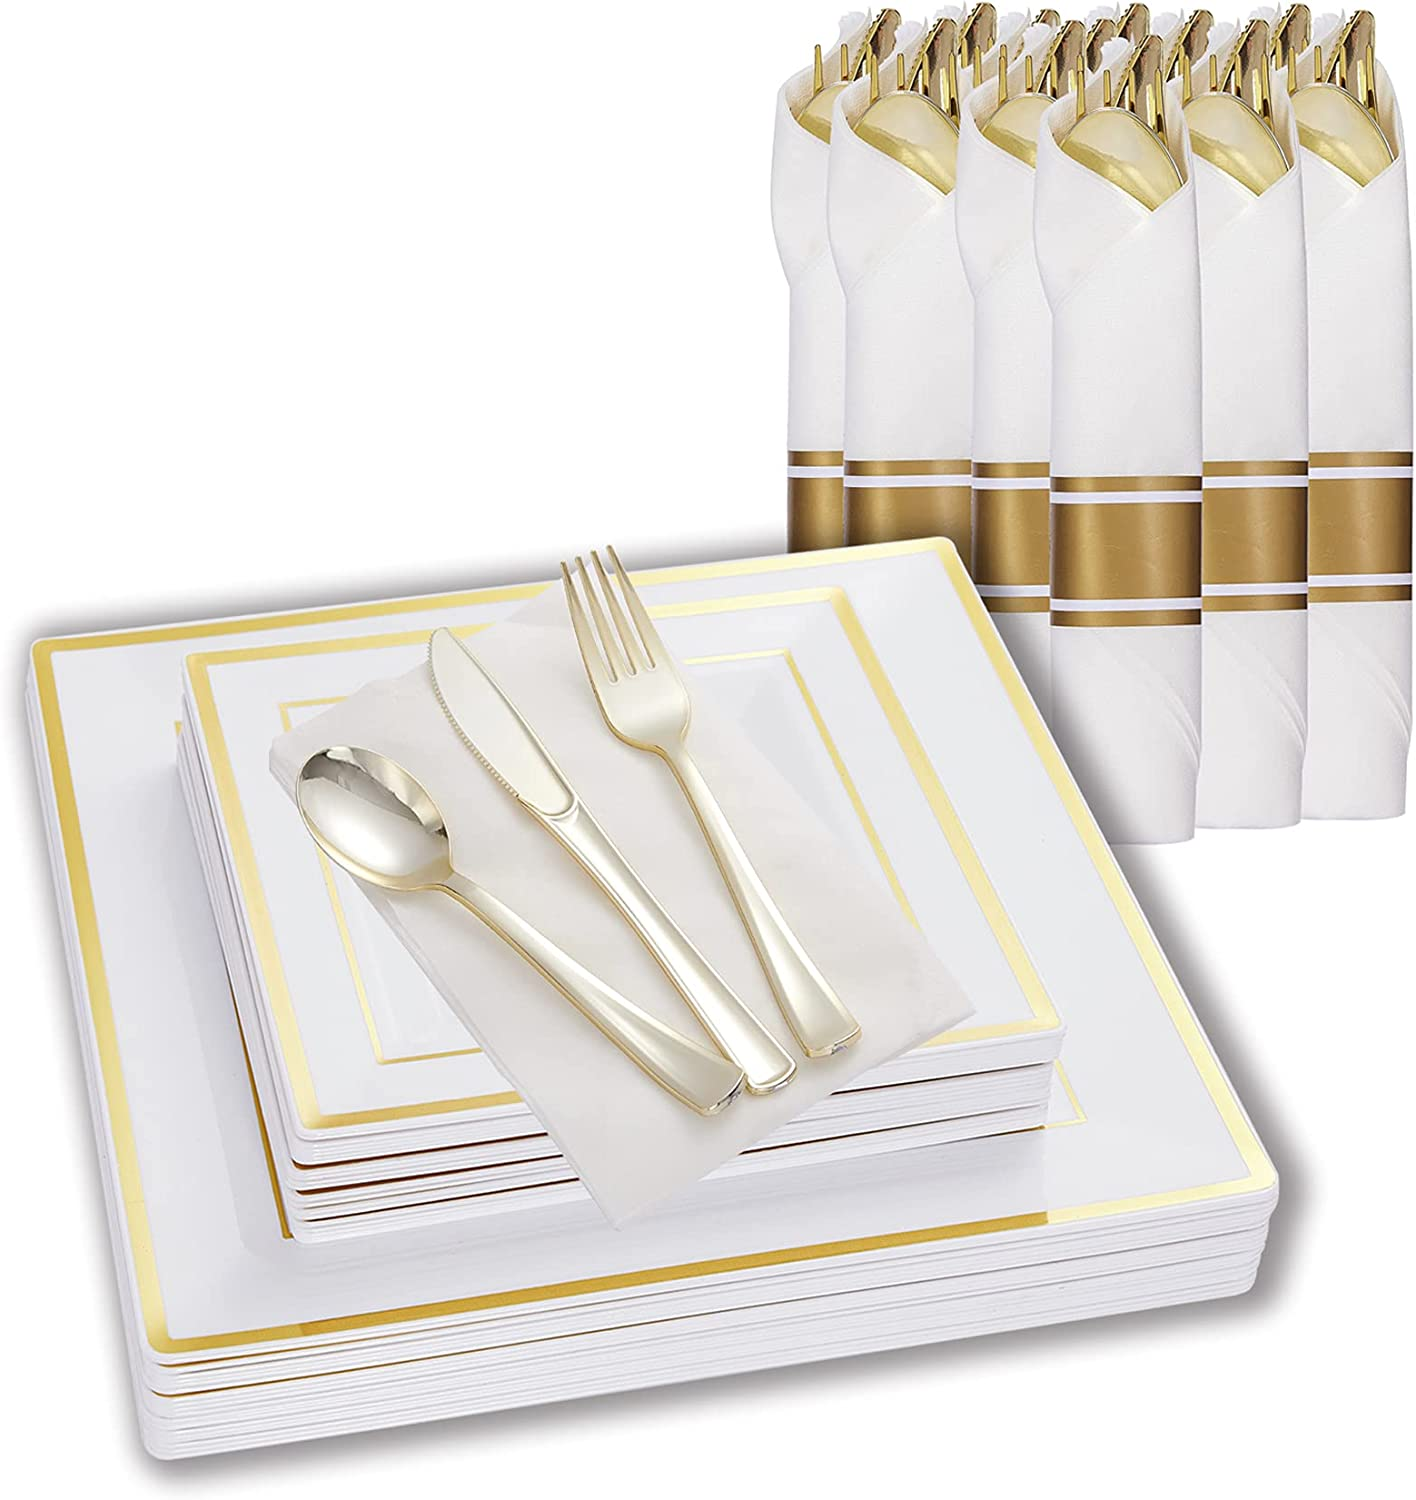 20 Guests 2021 autumn and winter new Square Plastic Plates Silverware and w shopping Disposable Per